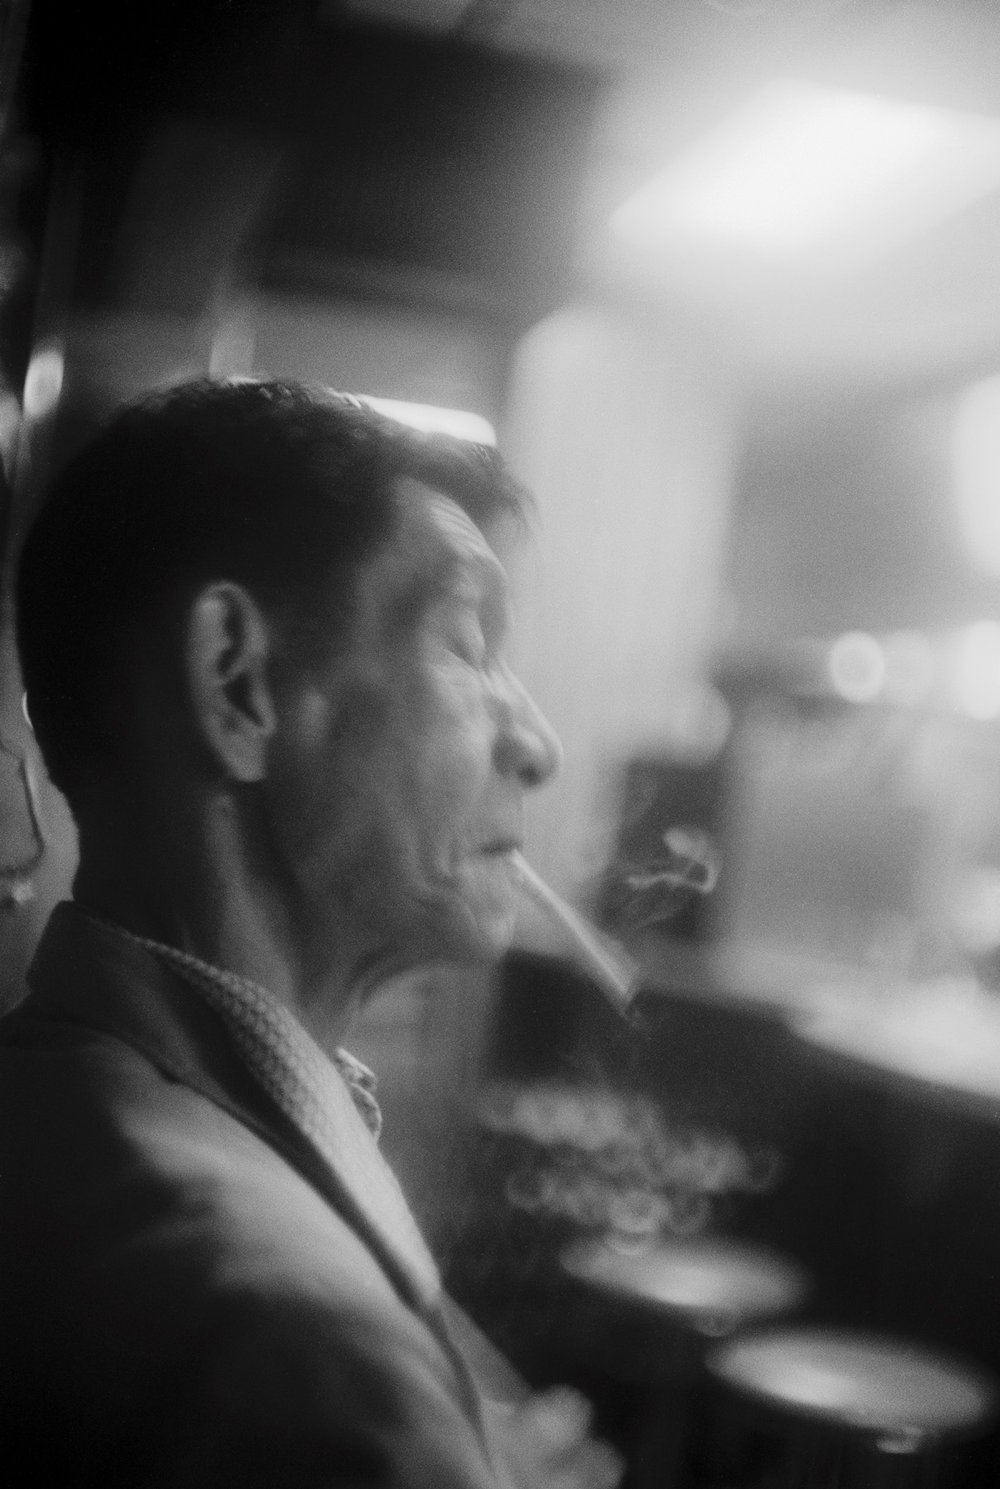 Starker Raucher, in einer Nacht-Bar in Brooklyn, New York 1990 Smoker, at a night-bar in Brooklyn, New York 1990, © Jörg Rubbert